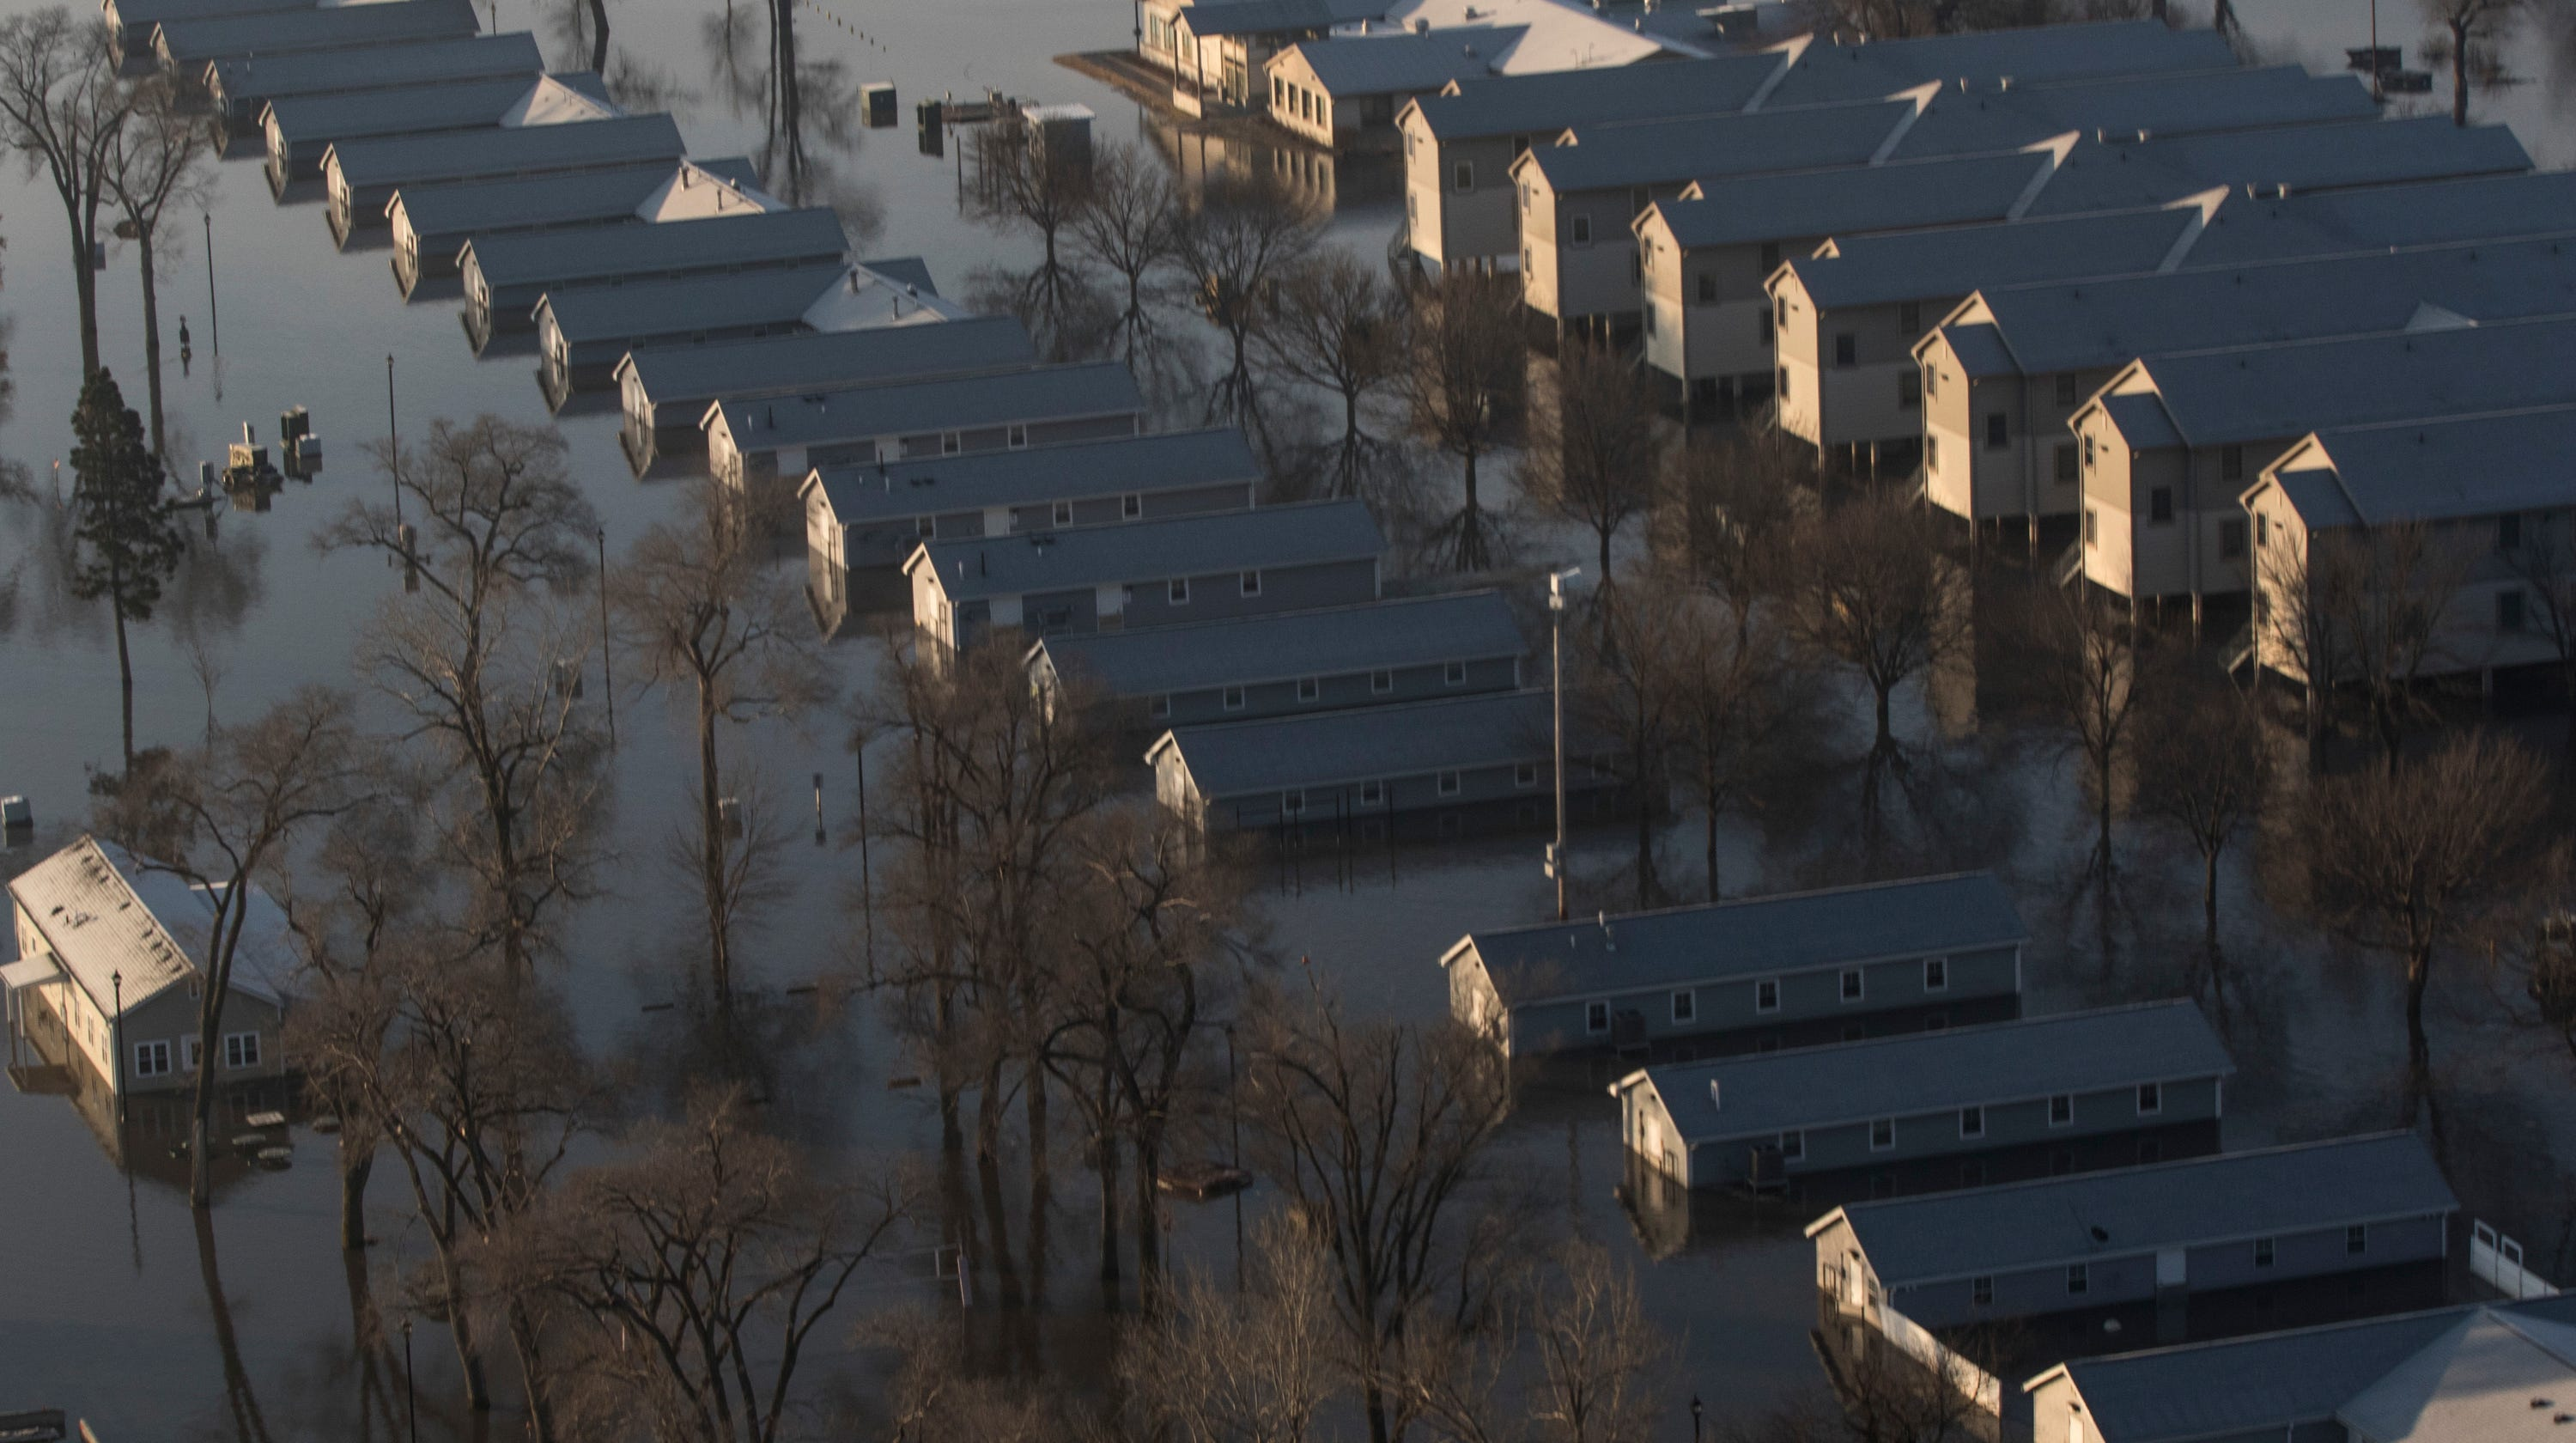 Nebraska underwater: 74 cities, 65 counties declare emergencies as flooding envelops state